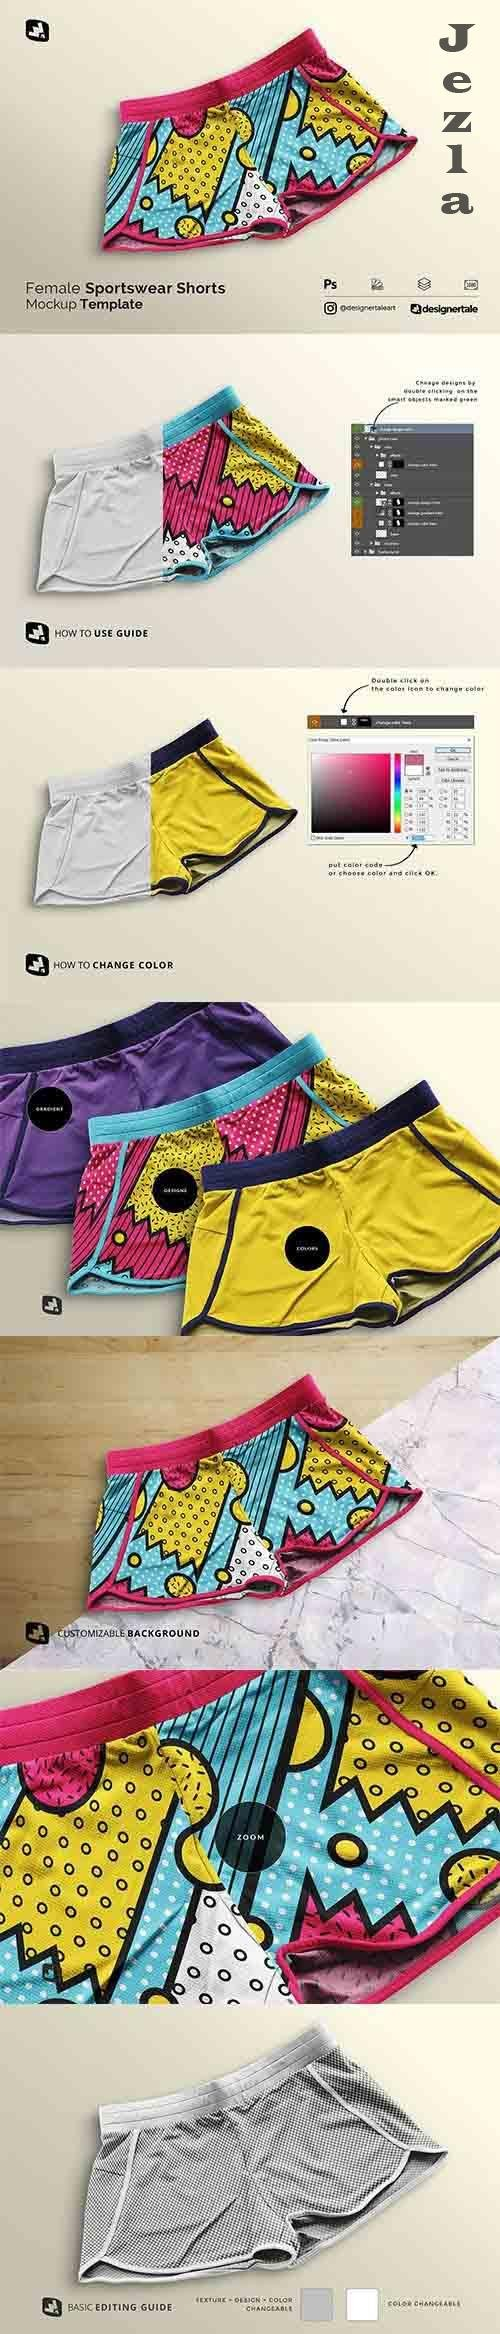 CreativeMarket - Female Sportswear Shorts Mockup 5357877